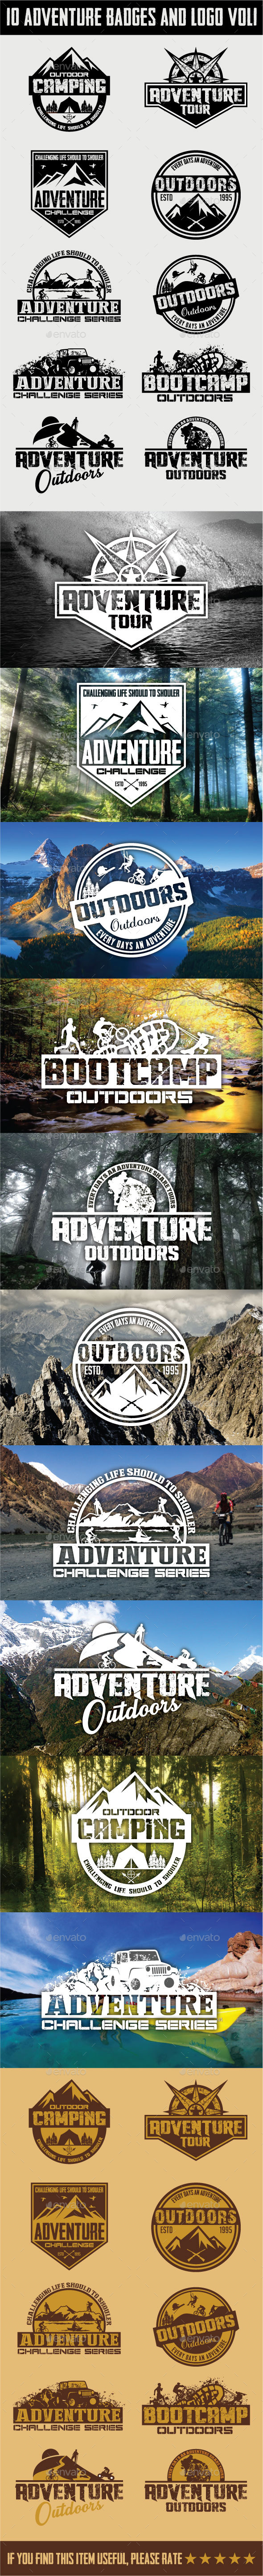 10 Adventure Badges and Logo Vol1 - Badges & Stickers Web Elements